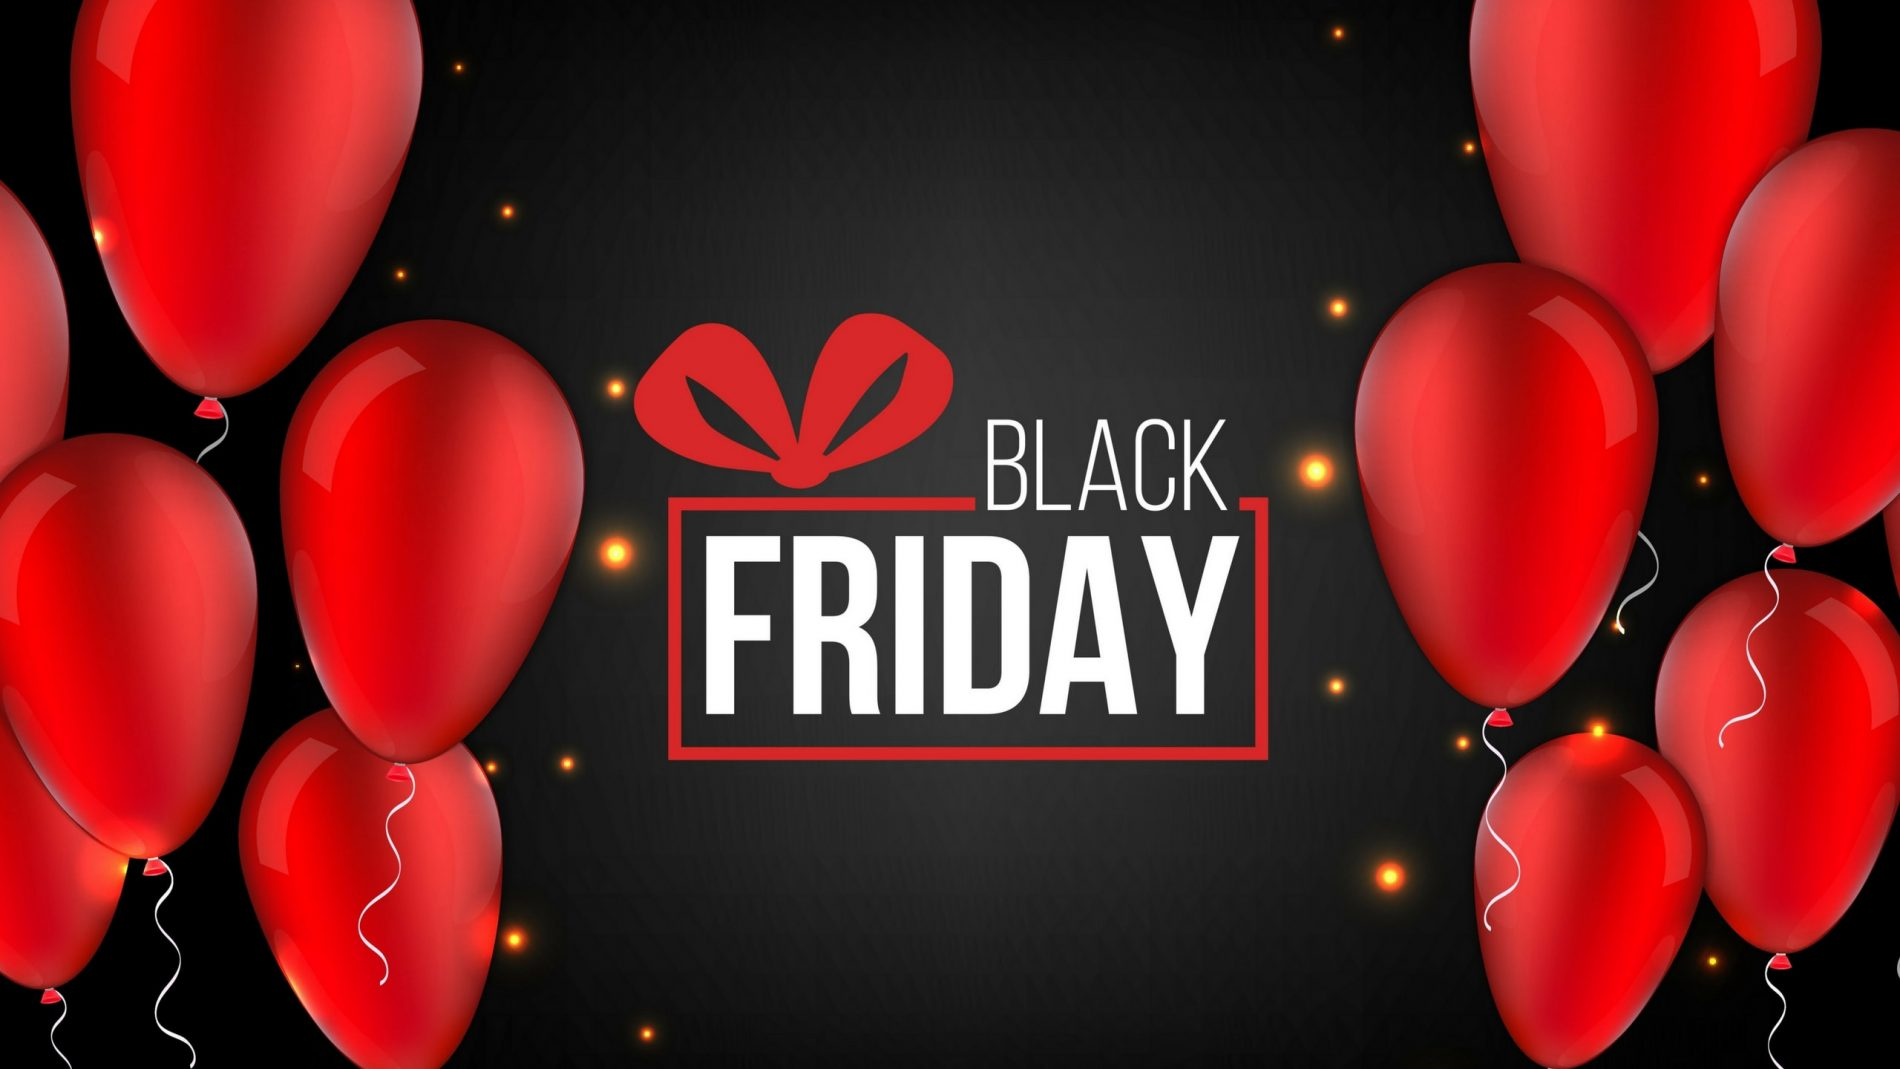 THE COUNTDOWN IS NOW ON FOR BLACK FRIDAY FURNITURE DEALS